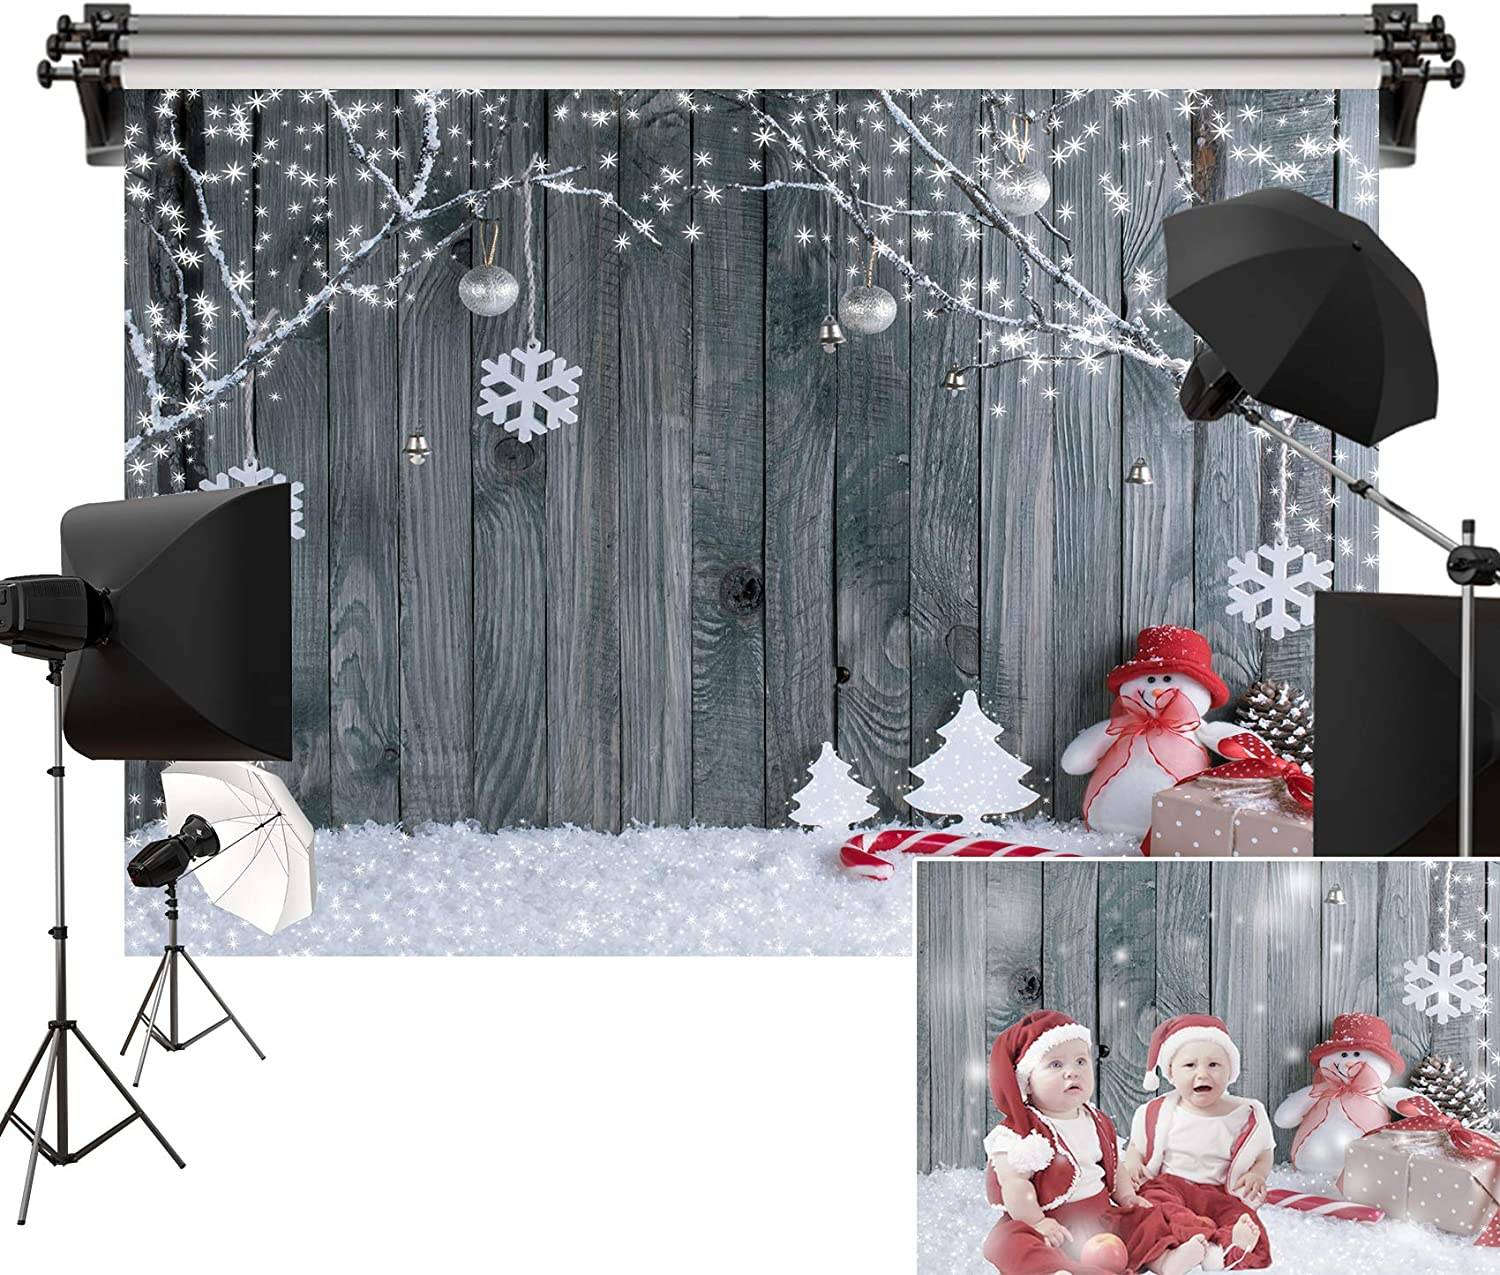 Kate 7x5ft/2.2m(W) x1.5m(H) Christmas Backdrop Wood Wall Backgrounds Winter Holiday Backdrops Snow Xmas Decorations Photography Studio Props